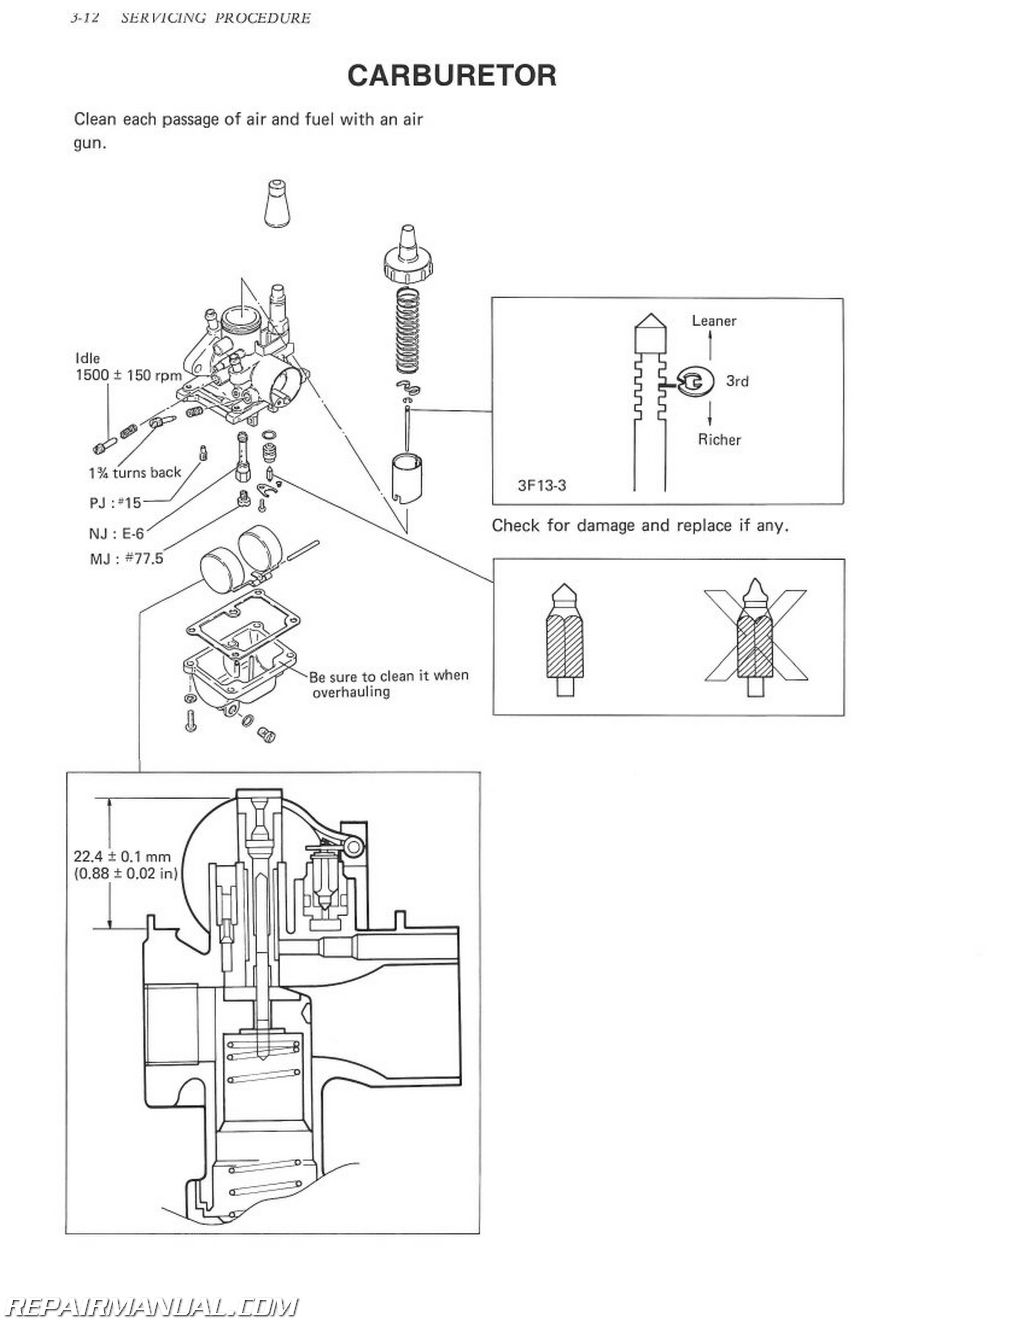 1980-1991 Suzuki FA50 Moped Service Manual